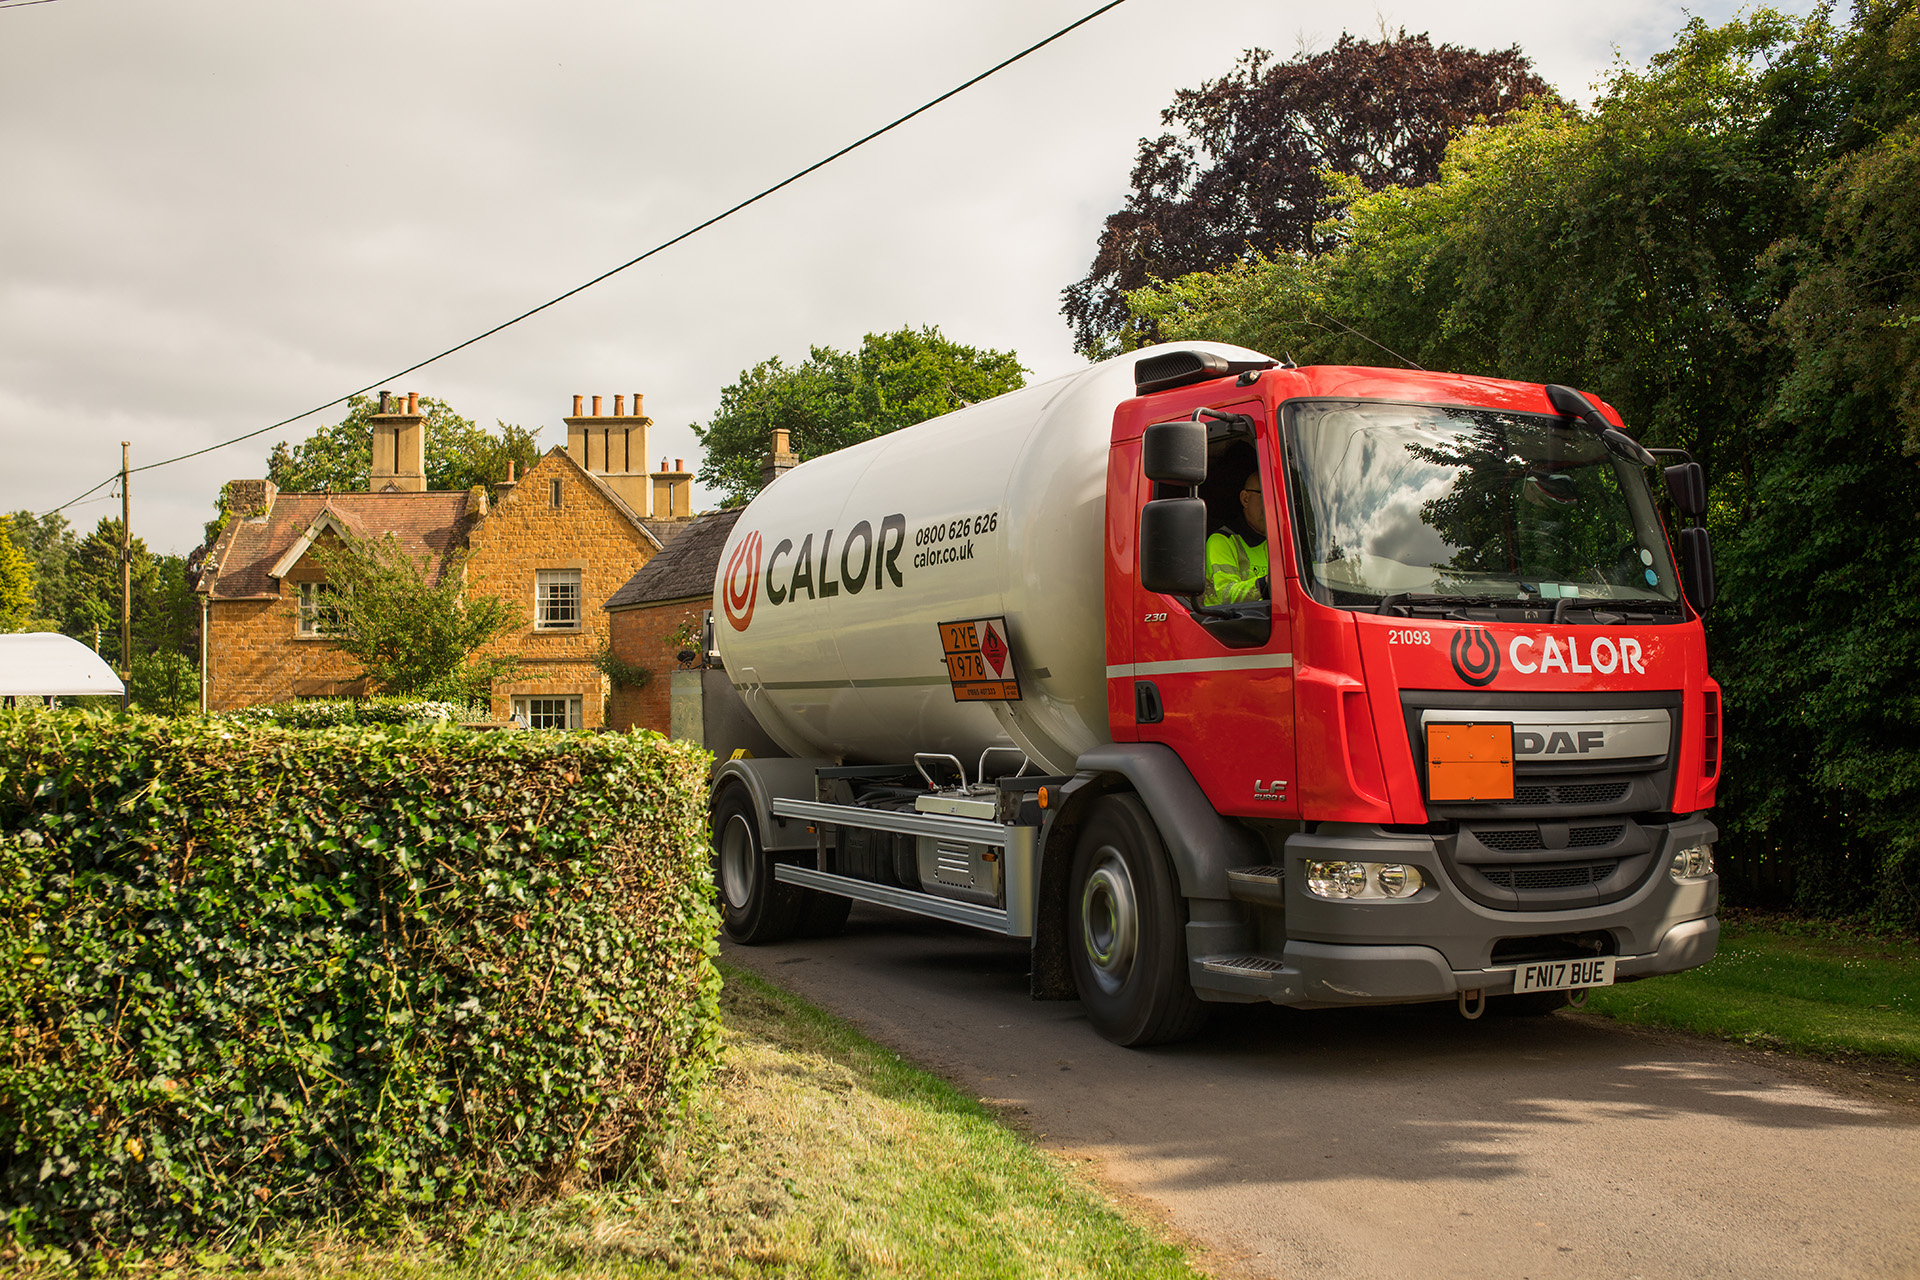 A Calor lorry driving on a narrow road in a rural village